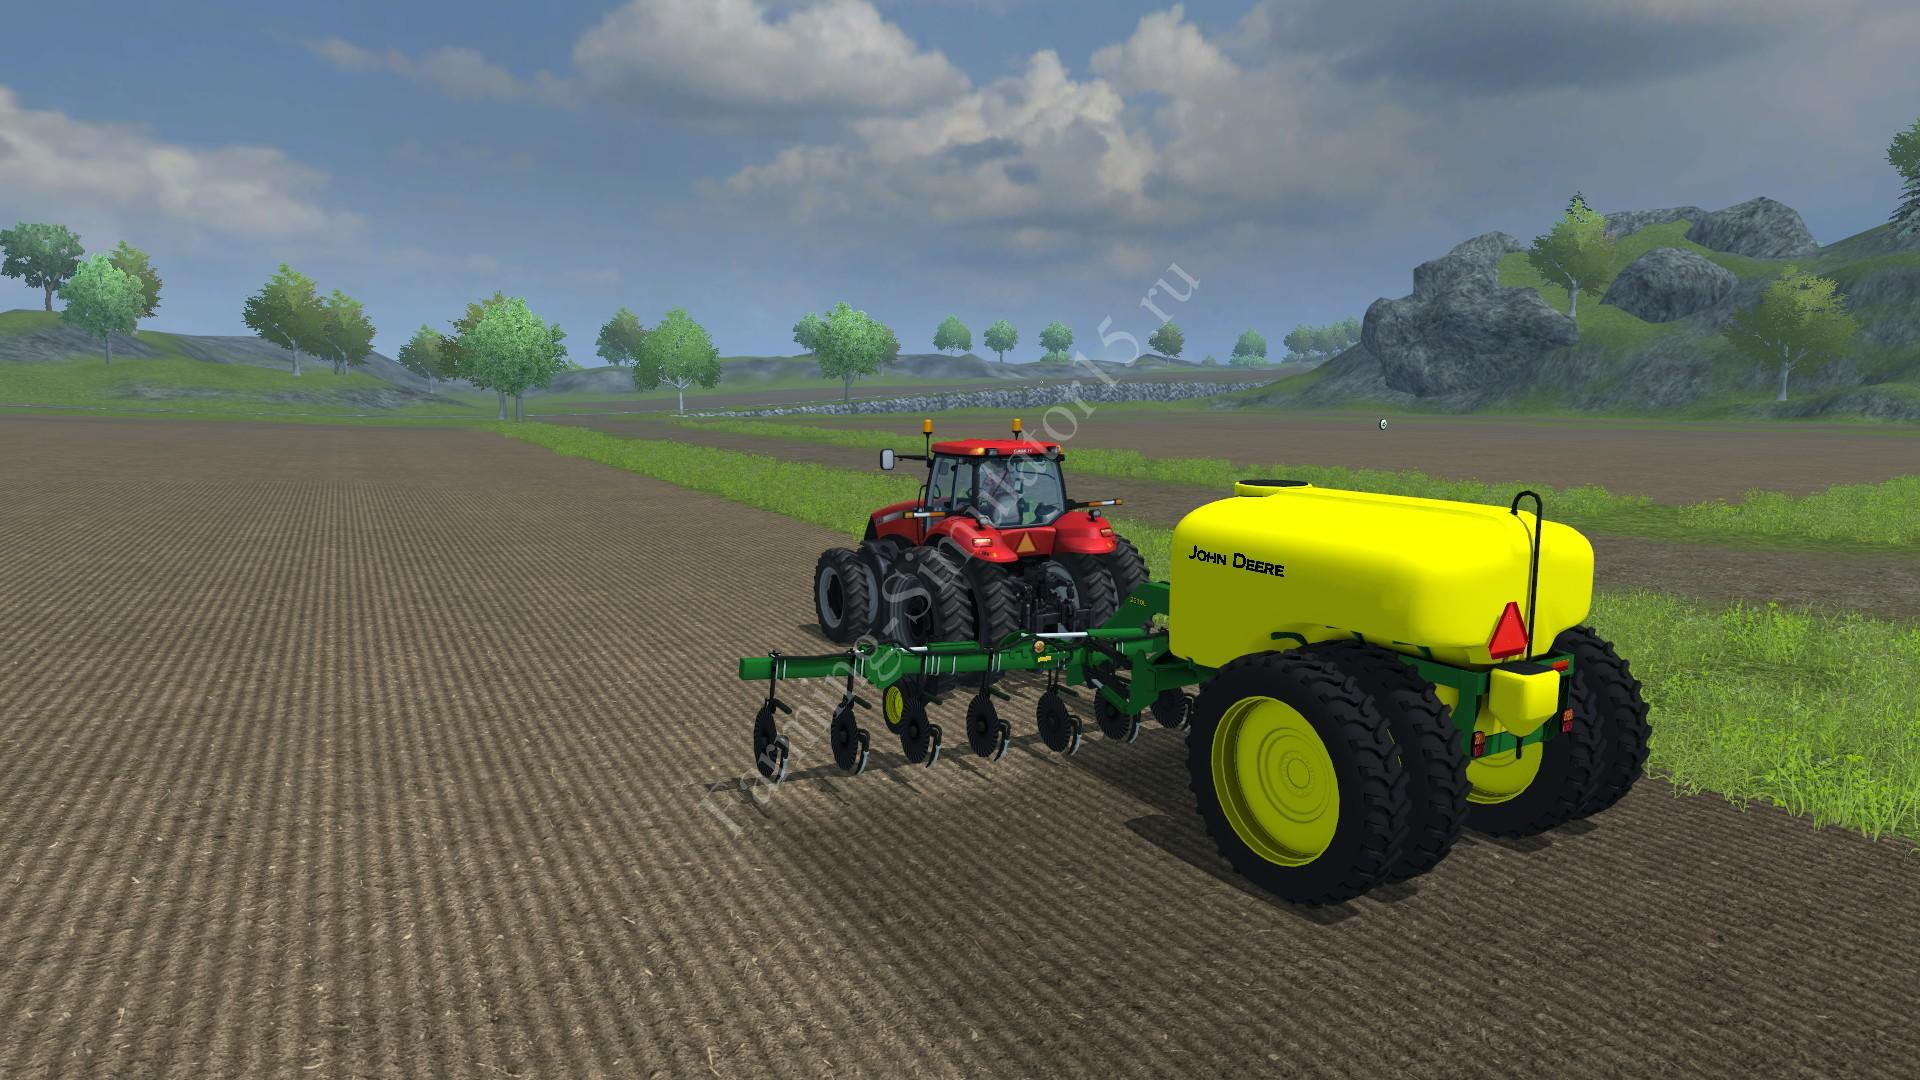 Мод опрыскивателя John Deere 2510L v 1.0 Beta Farming Simulator 2013, Farming Simulator 13